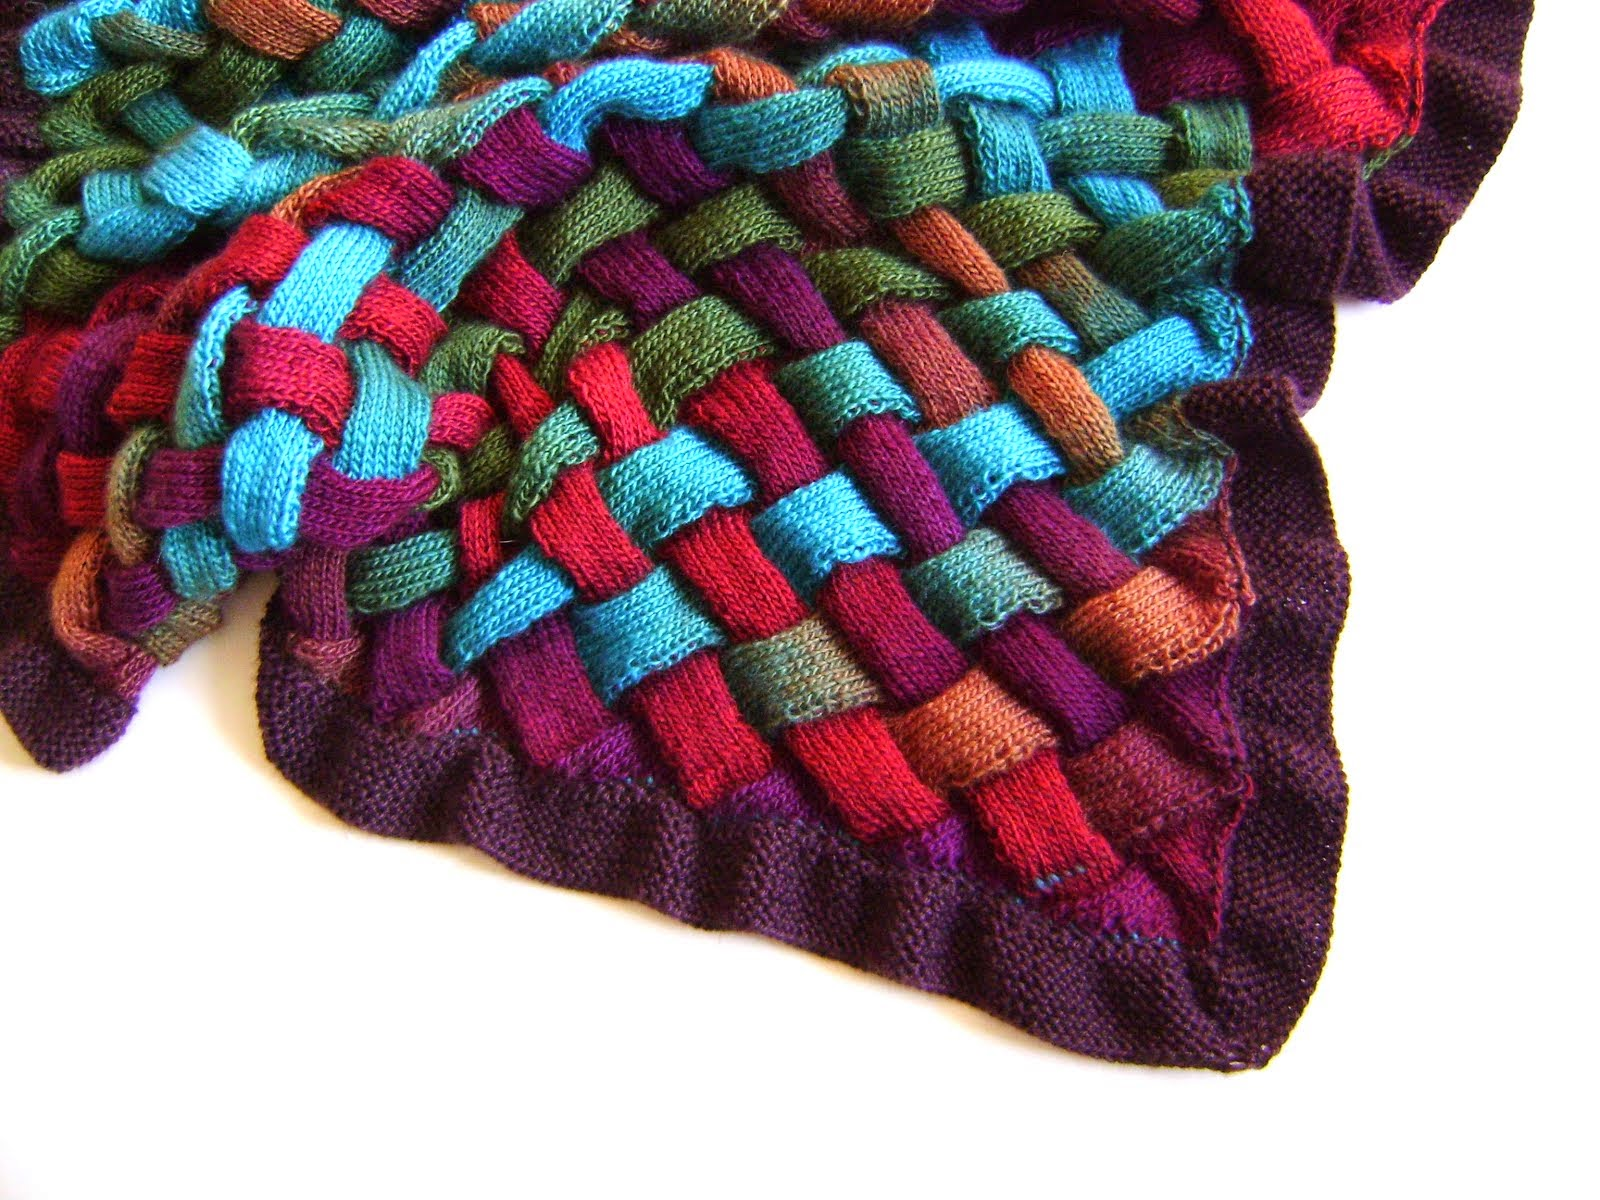 Knit an Entrelac Blanket $5.00